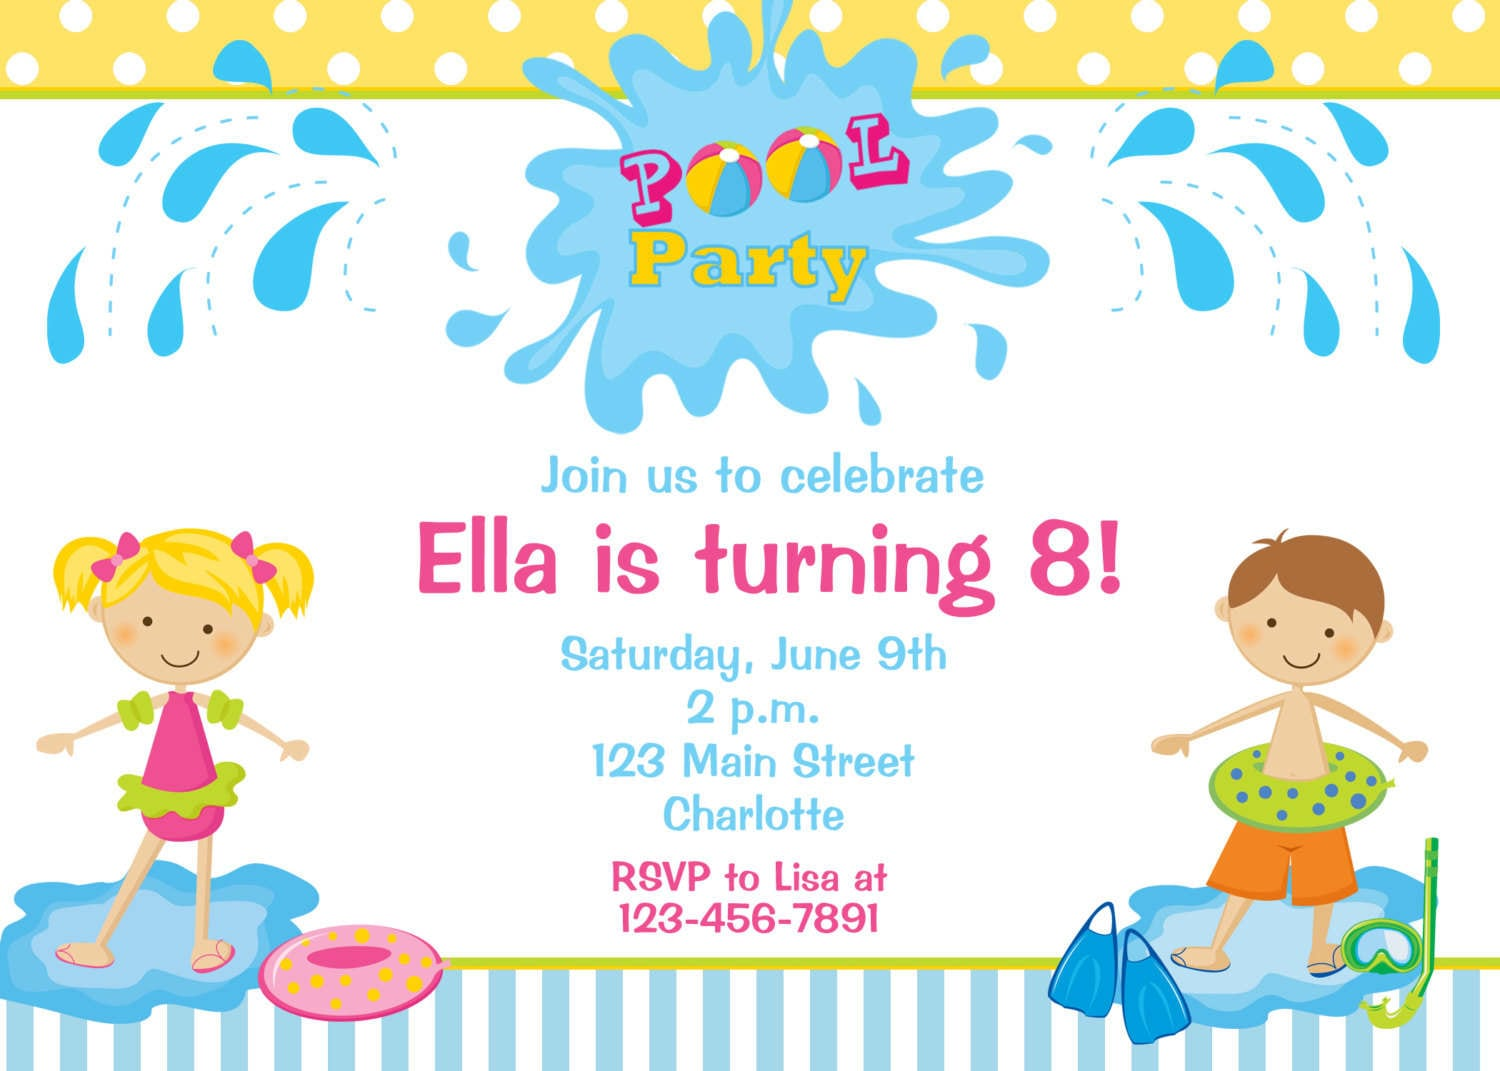 Invitations For Kids Party Elegant Invitations For Kids Party Hd